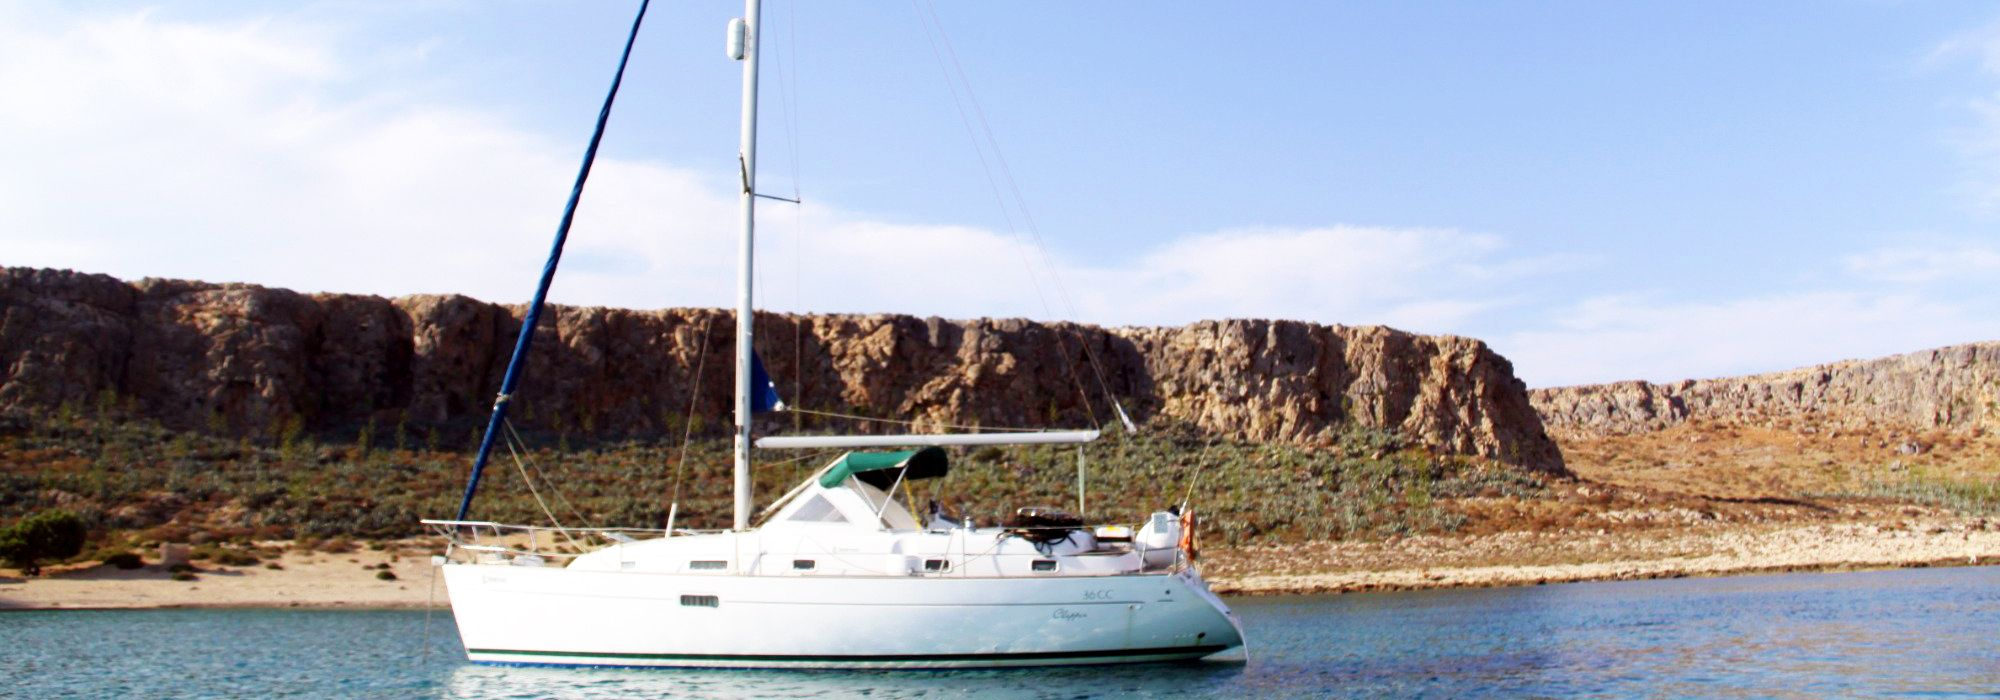 Enjoy a daily sailing boat cruise